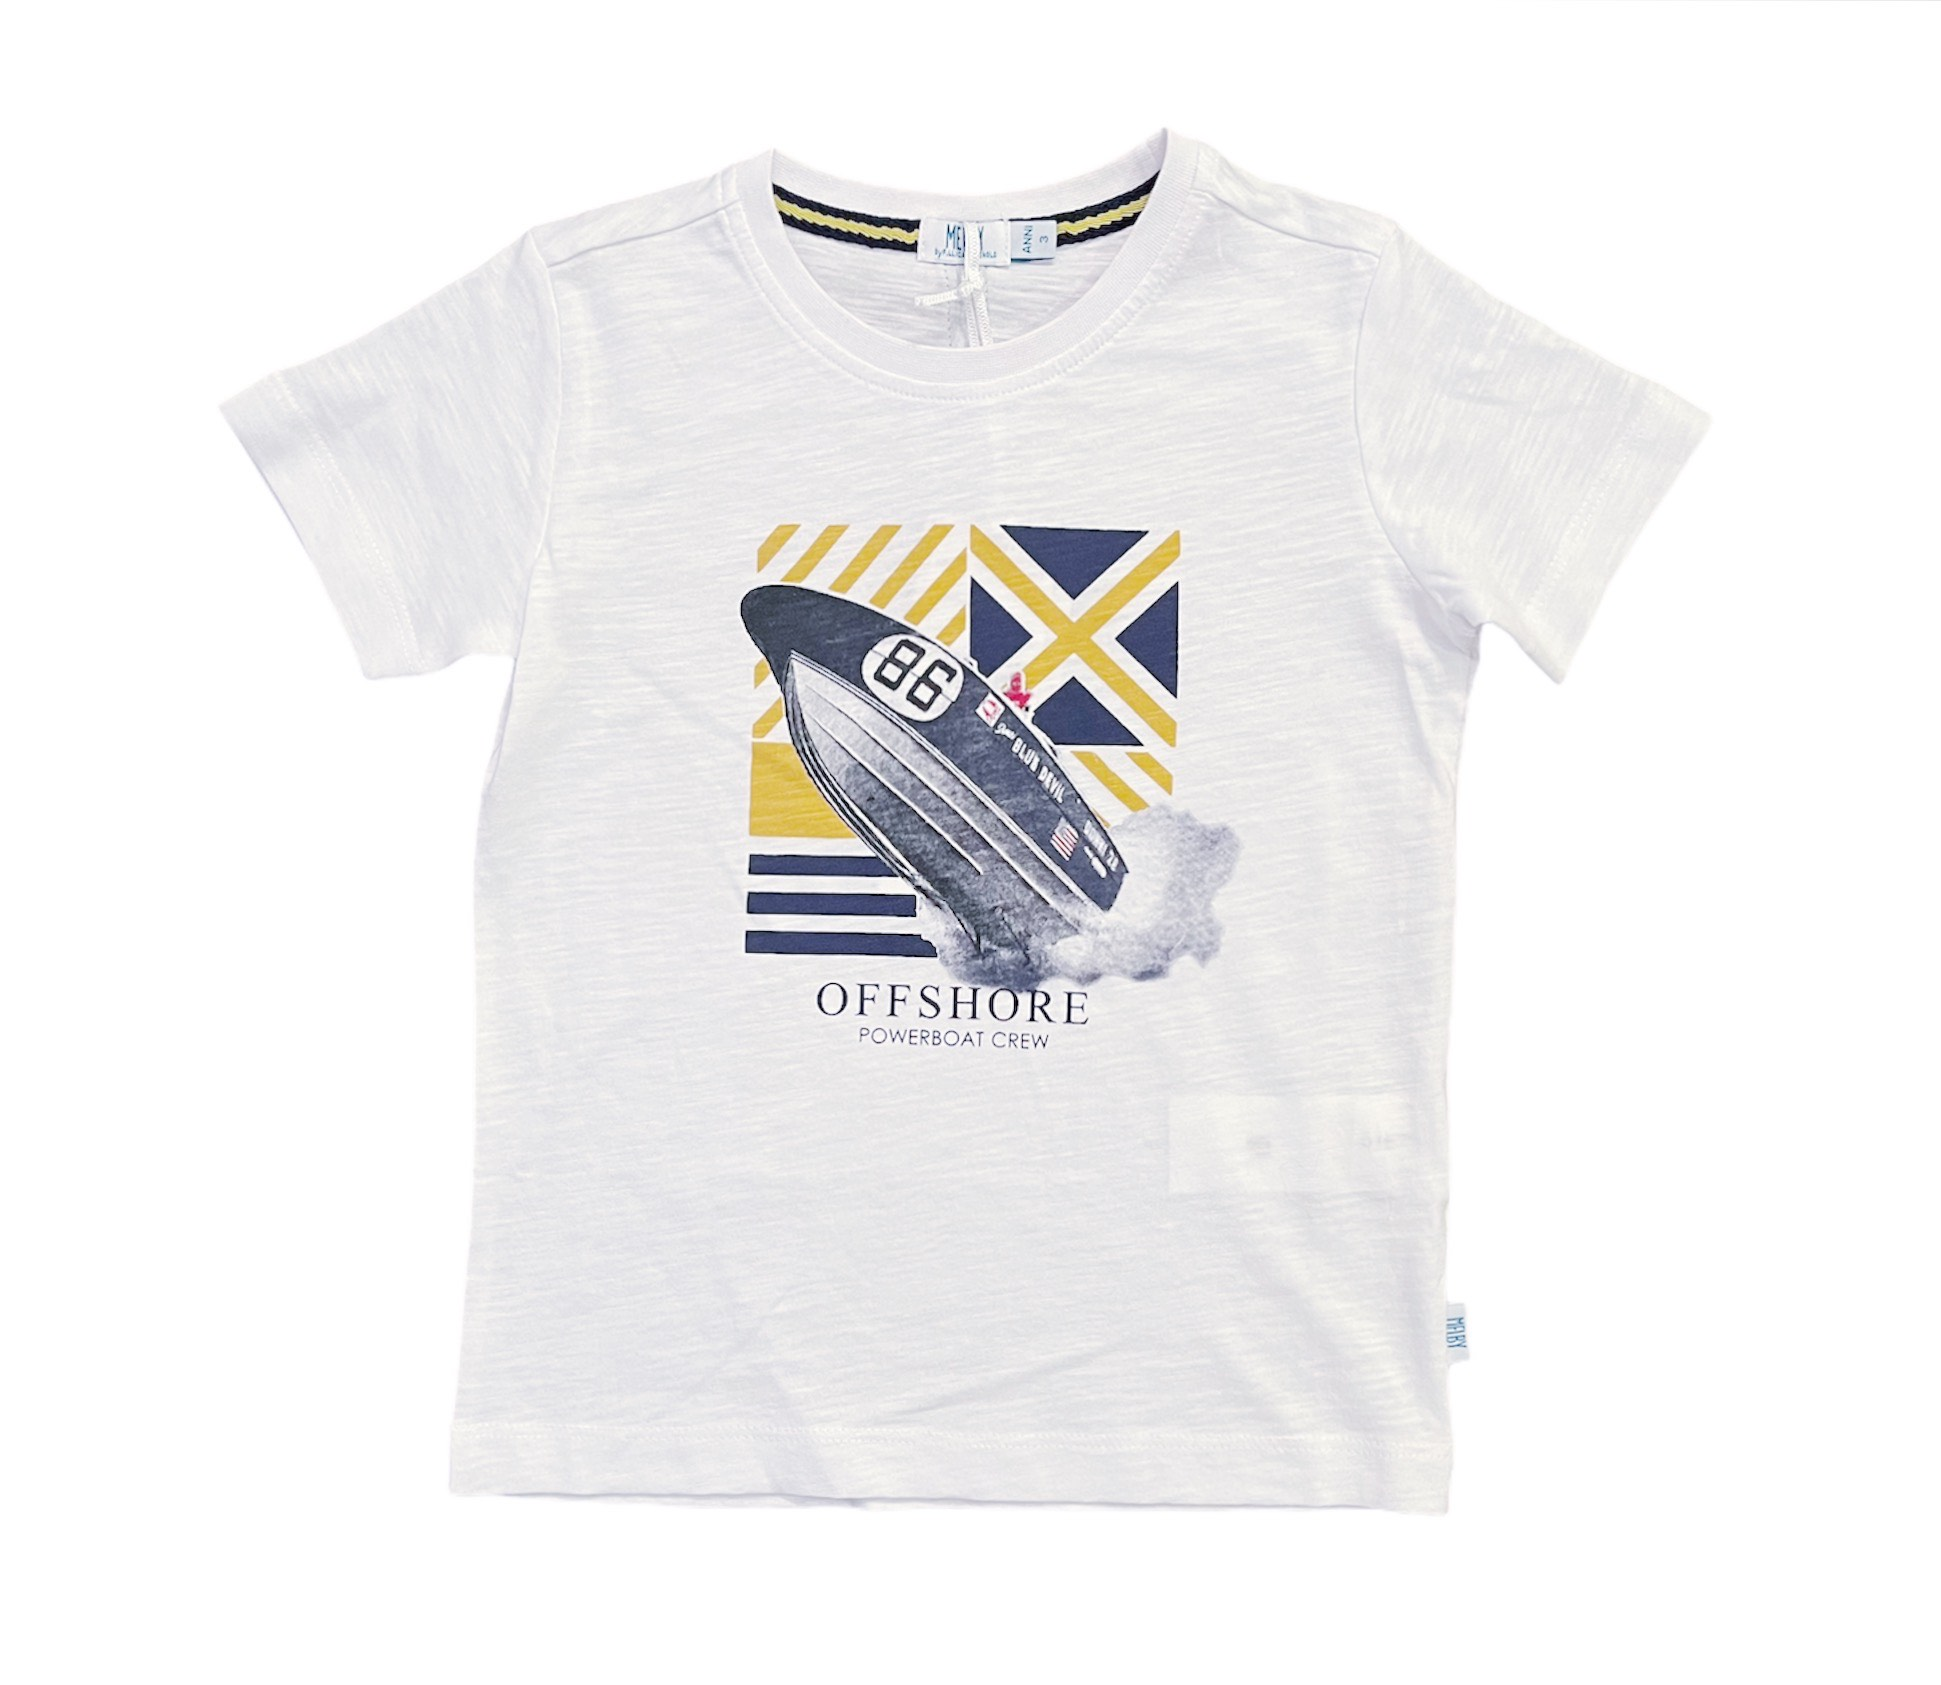 T-SHIRT MELBY OFF SHORE 1